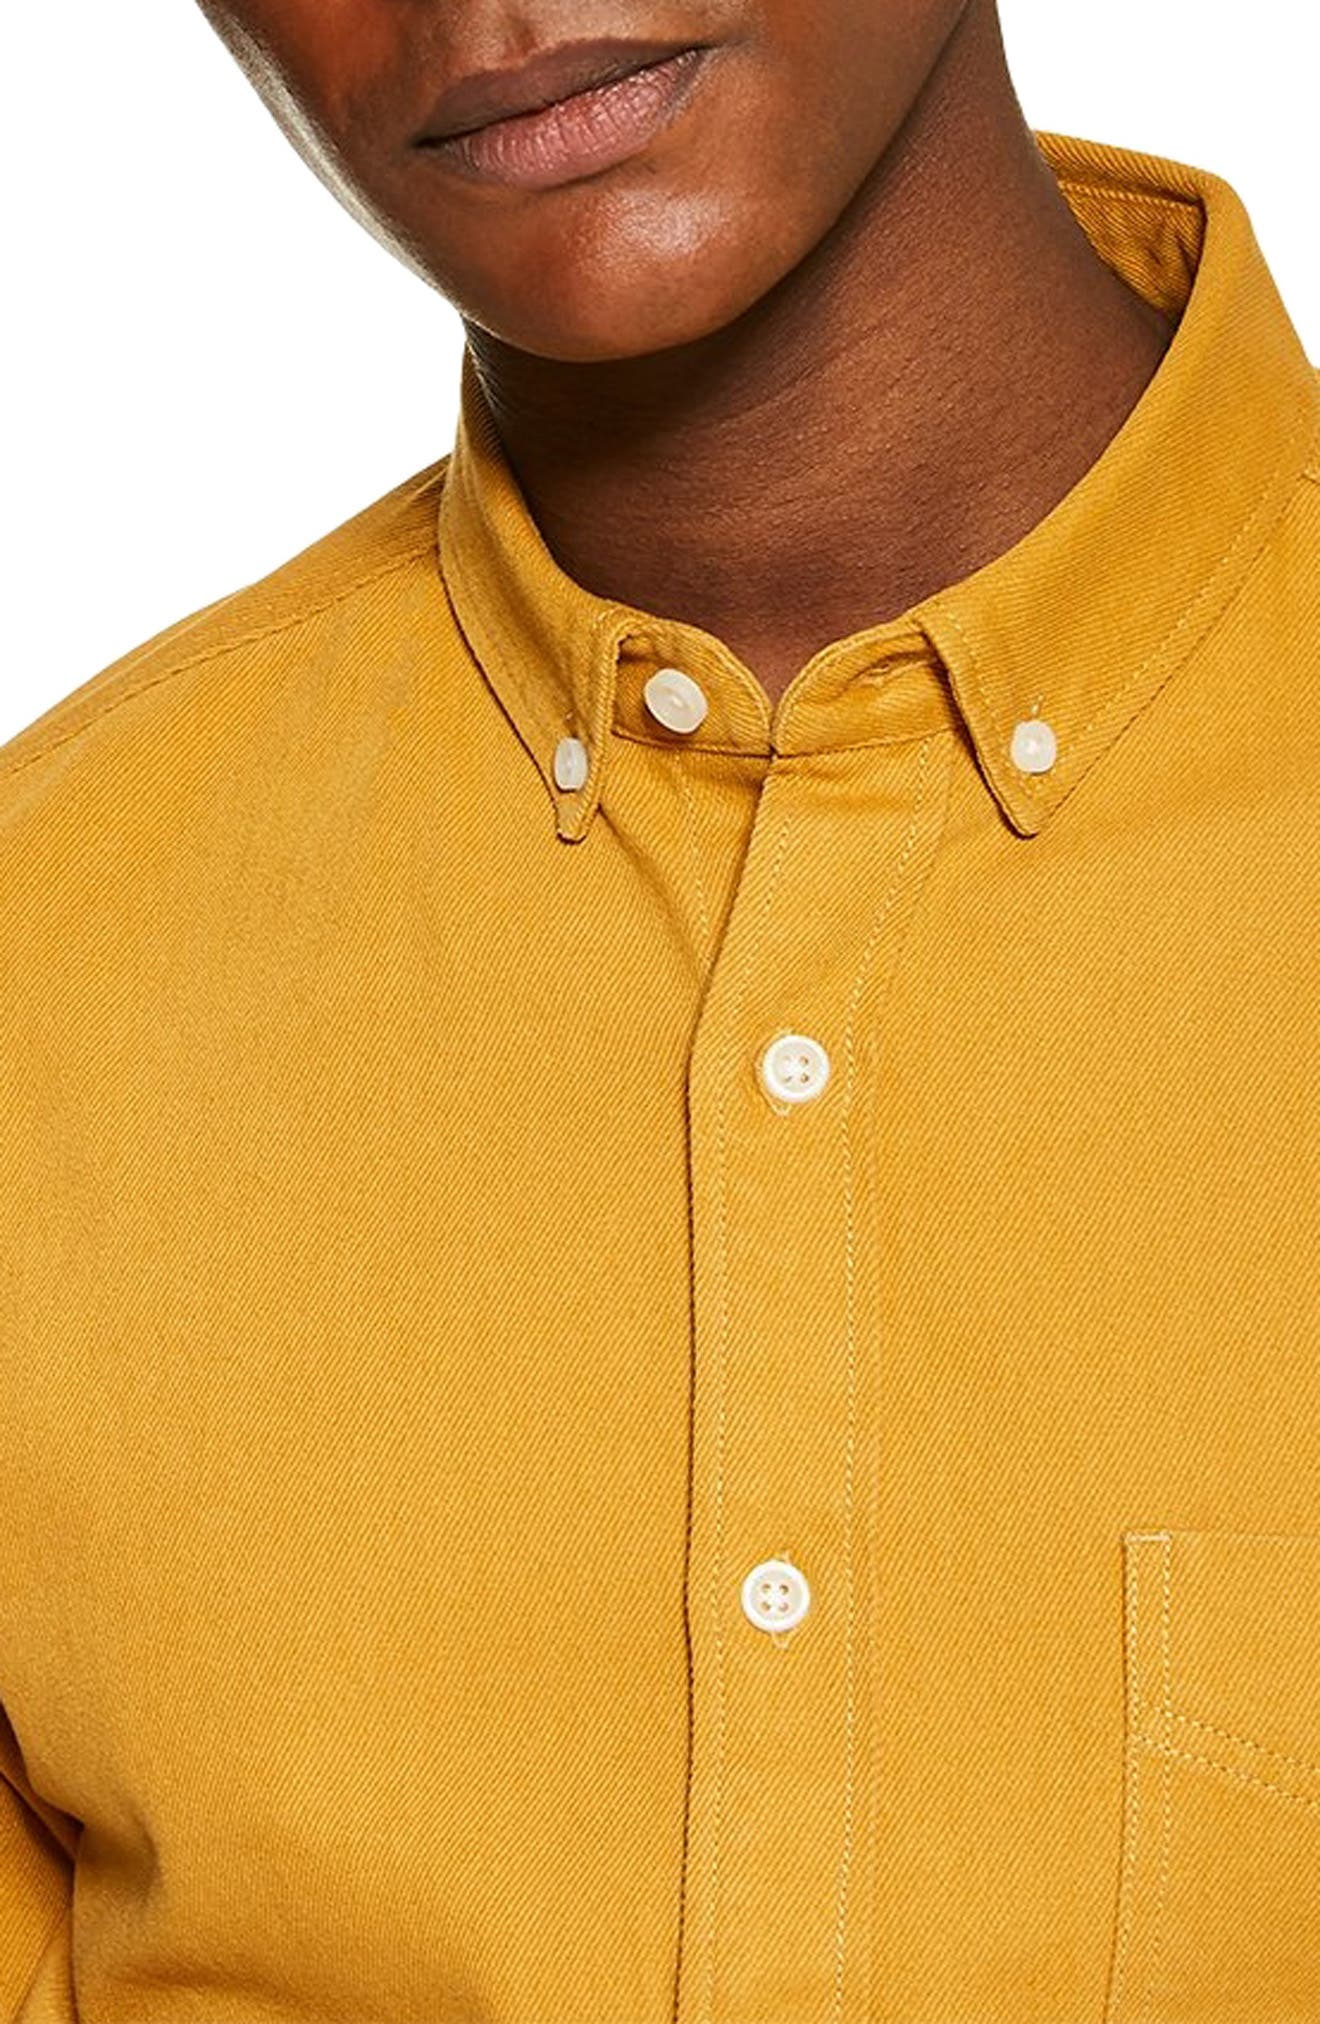 Slim Fit Twill Shirt,                             Alternate thumbnail 2, color,                             YELLOW